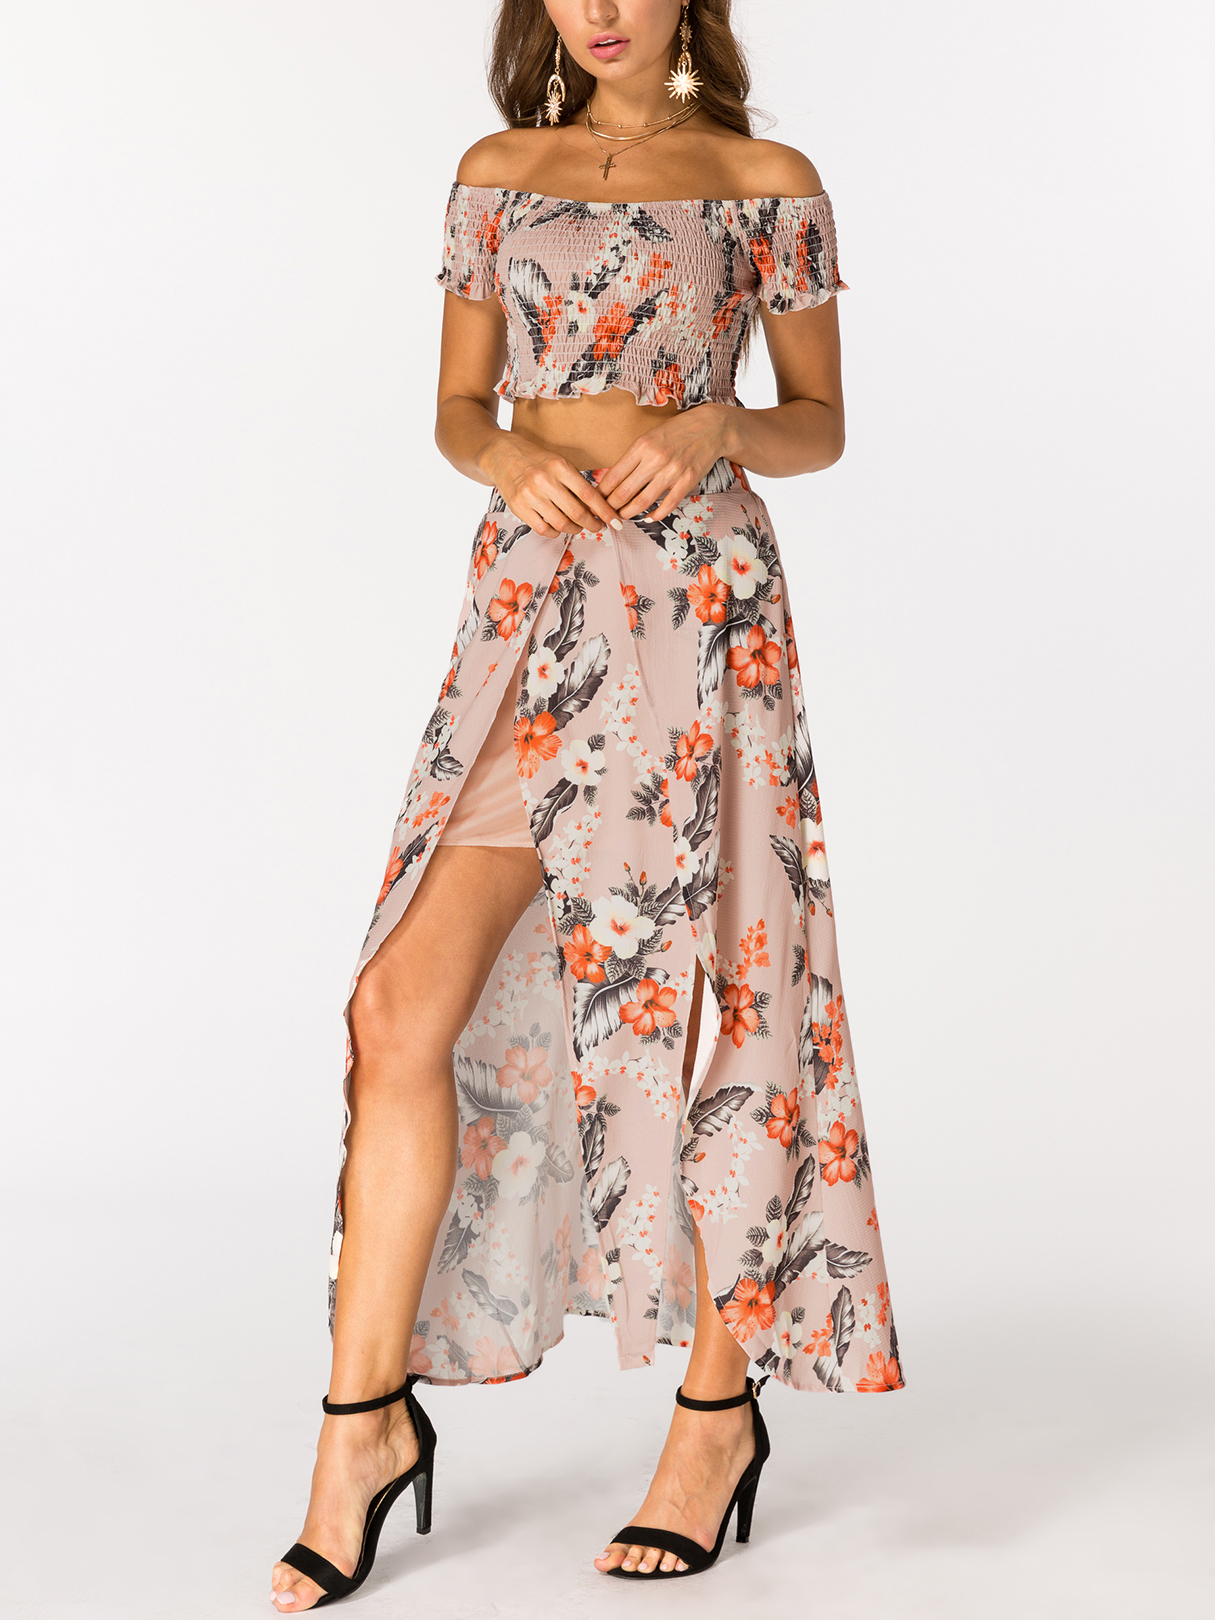 Random Floral Print Off the Shoulder High Slit Two Piece Outfits cute off the shoulder lemon dress for women